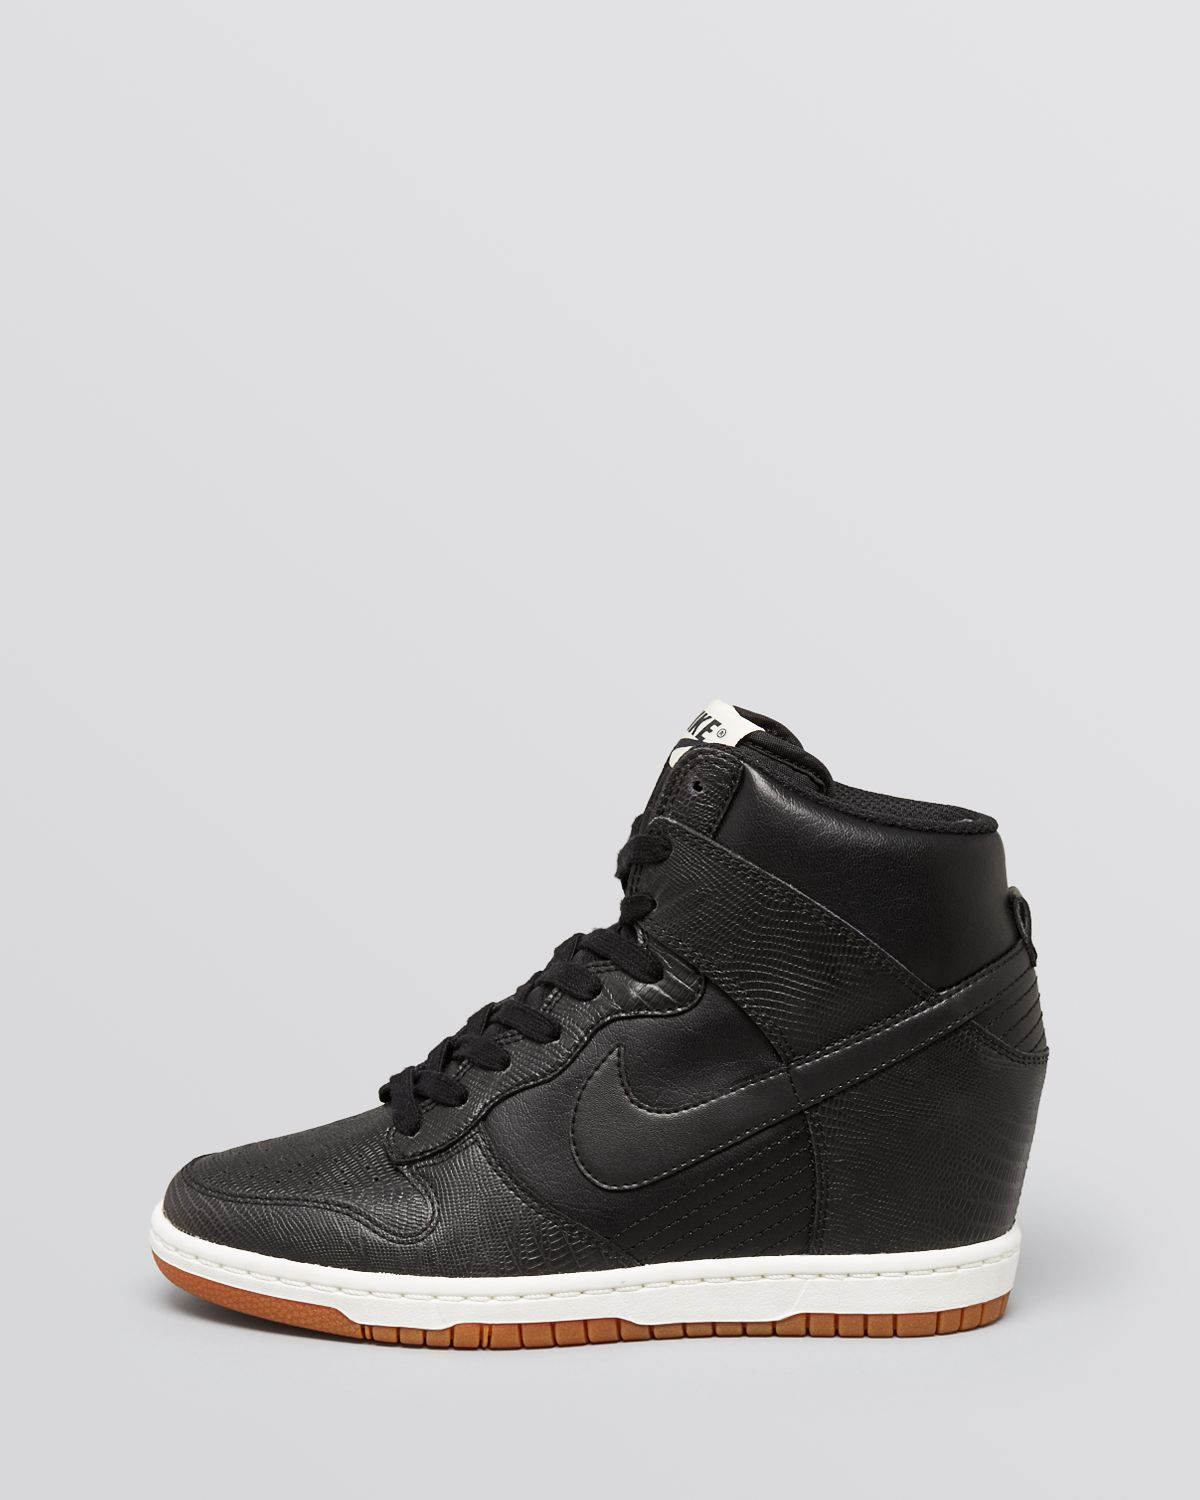 1f78ab7c3885 ... buy gallery. previously sold at bloomingdales womens wedge sneakers  womens nike dunk womens nike dunk